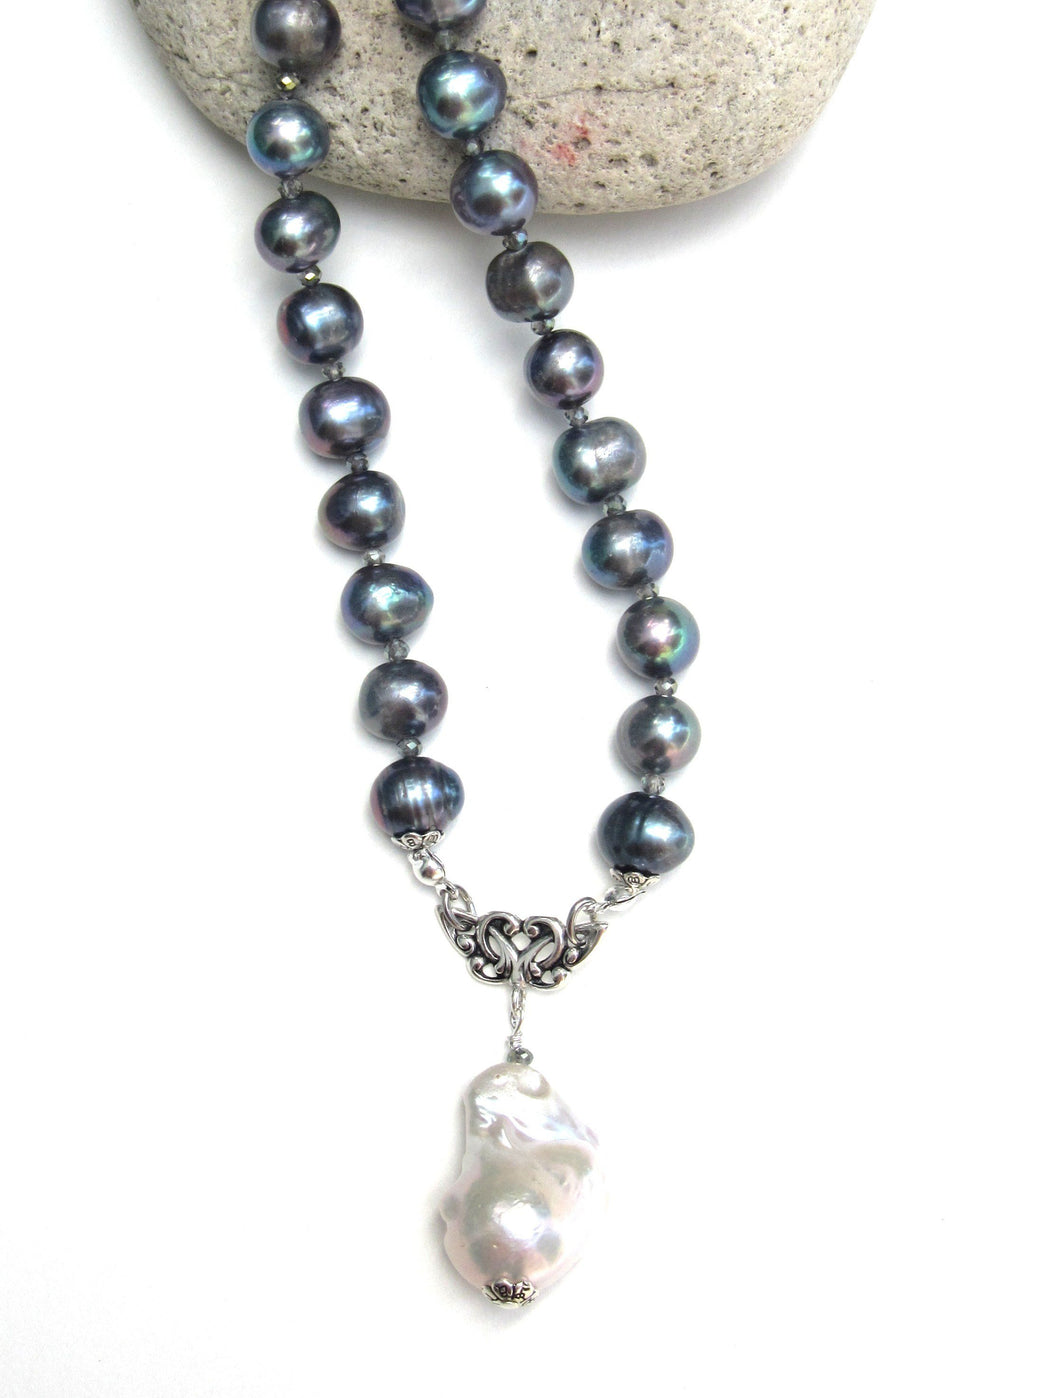 Ovation Pearl Necklace - Grey